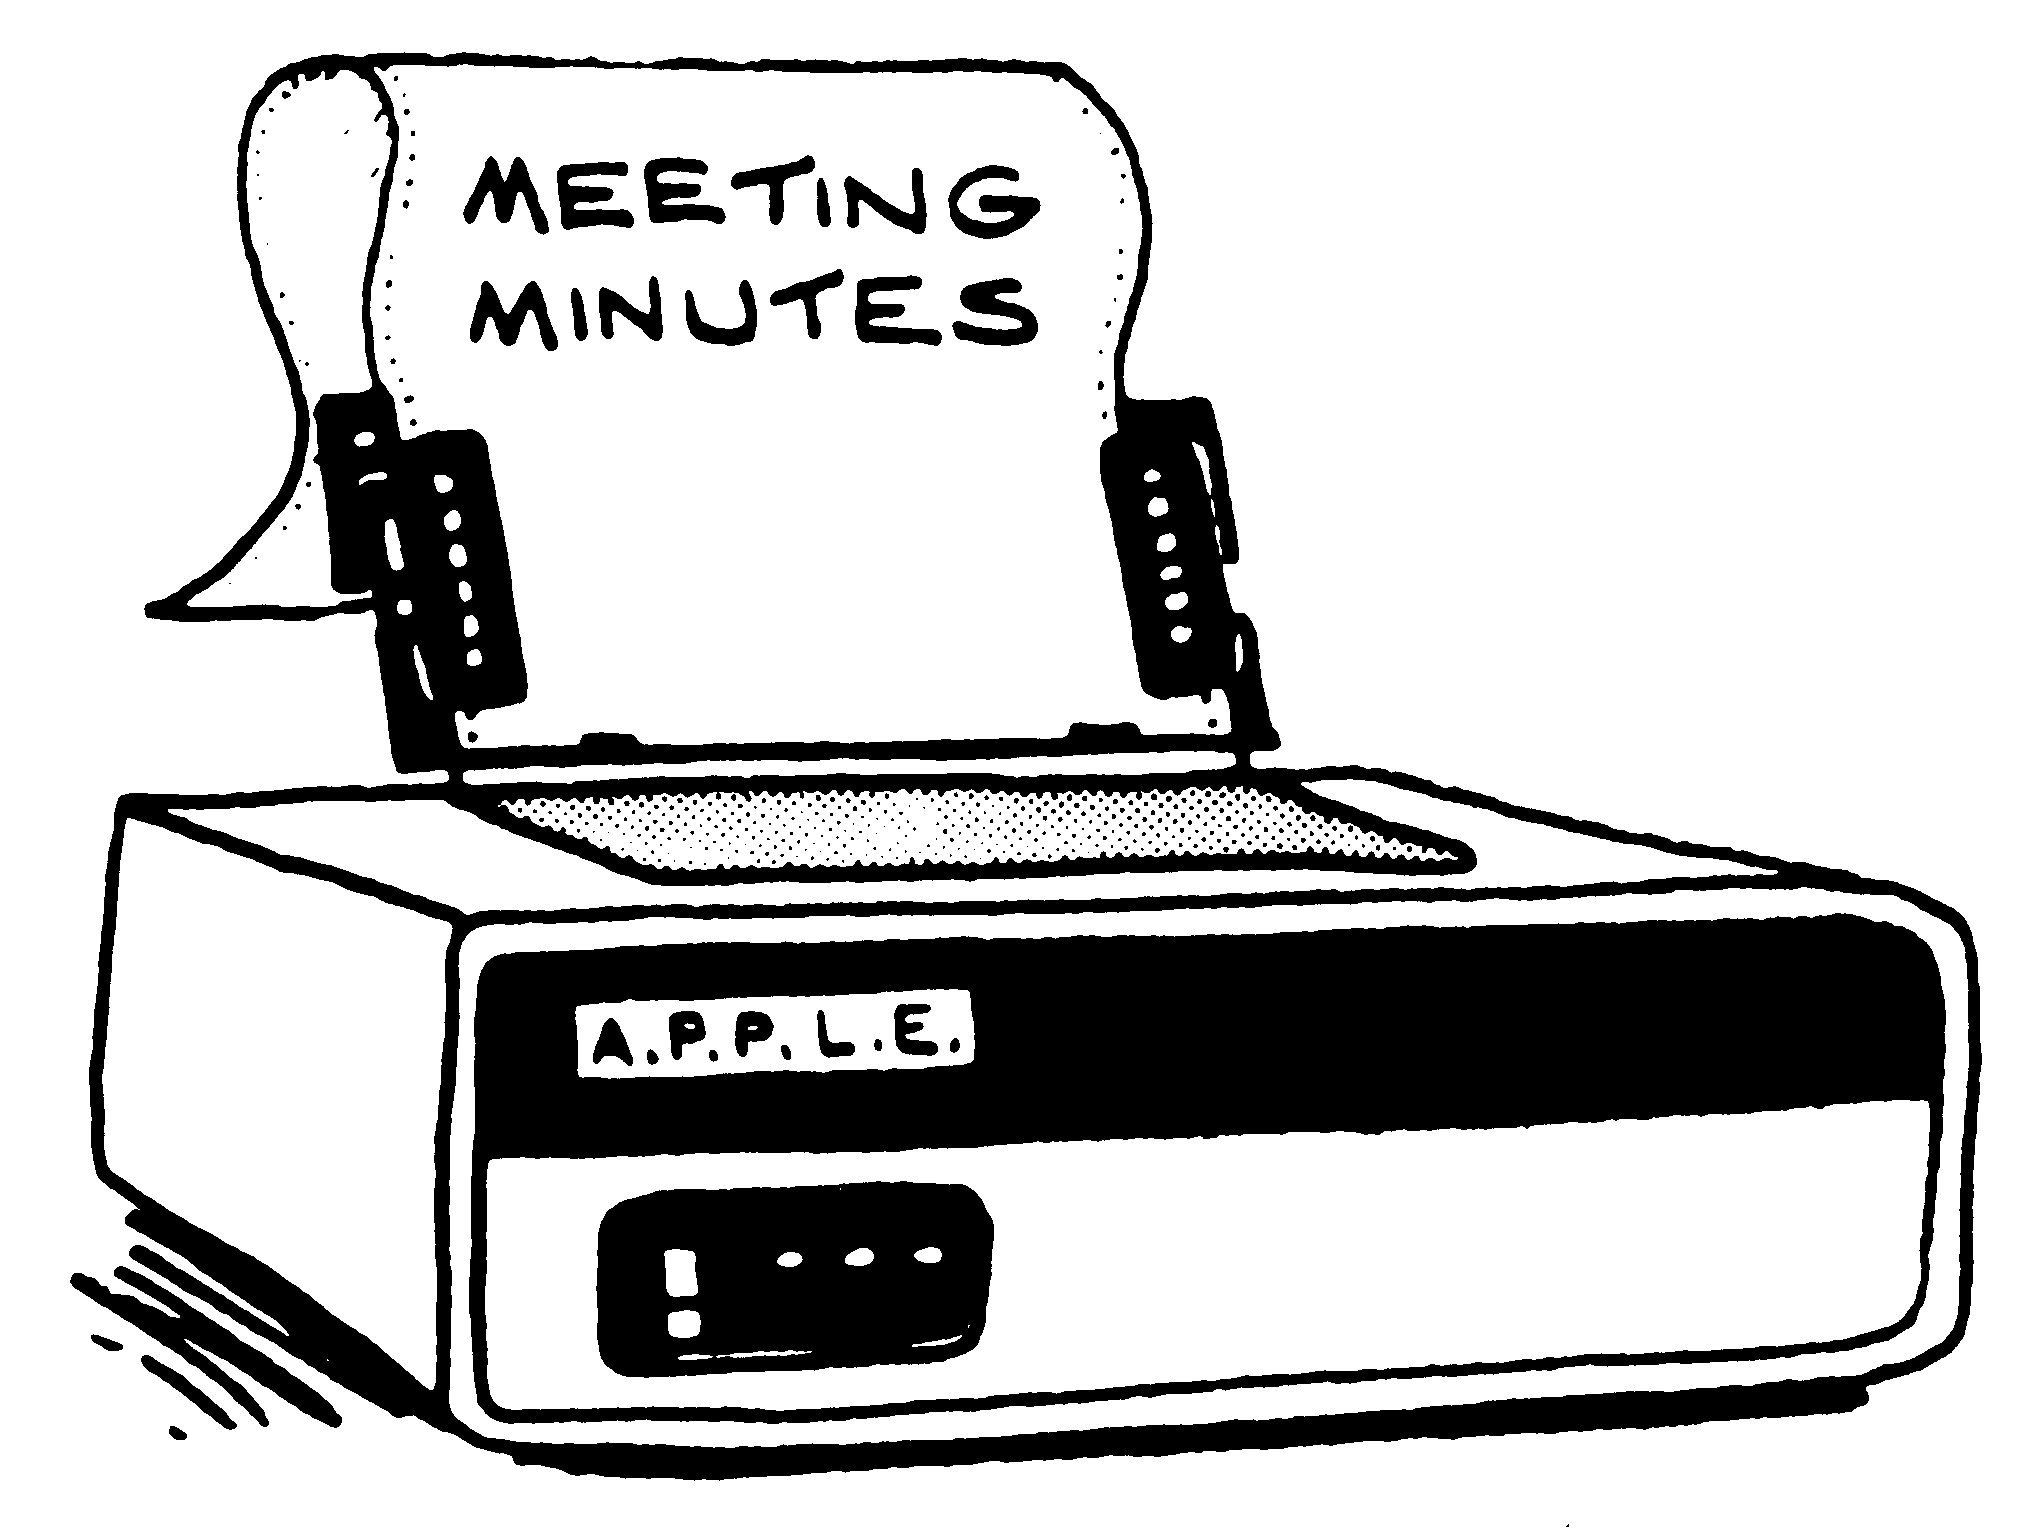 Minutes Archive